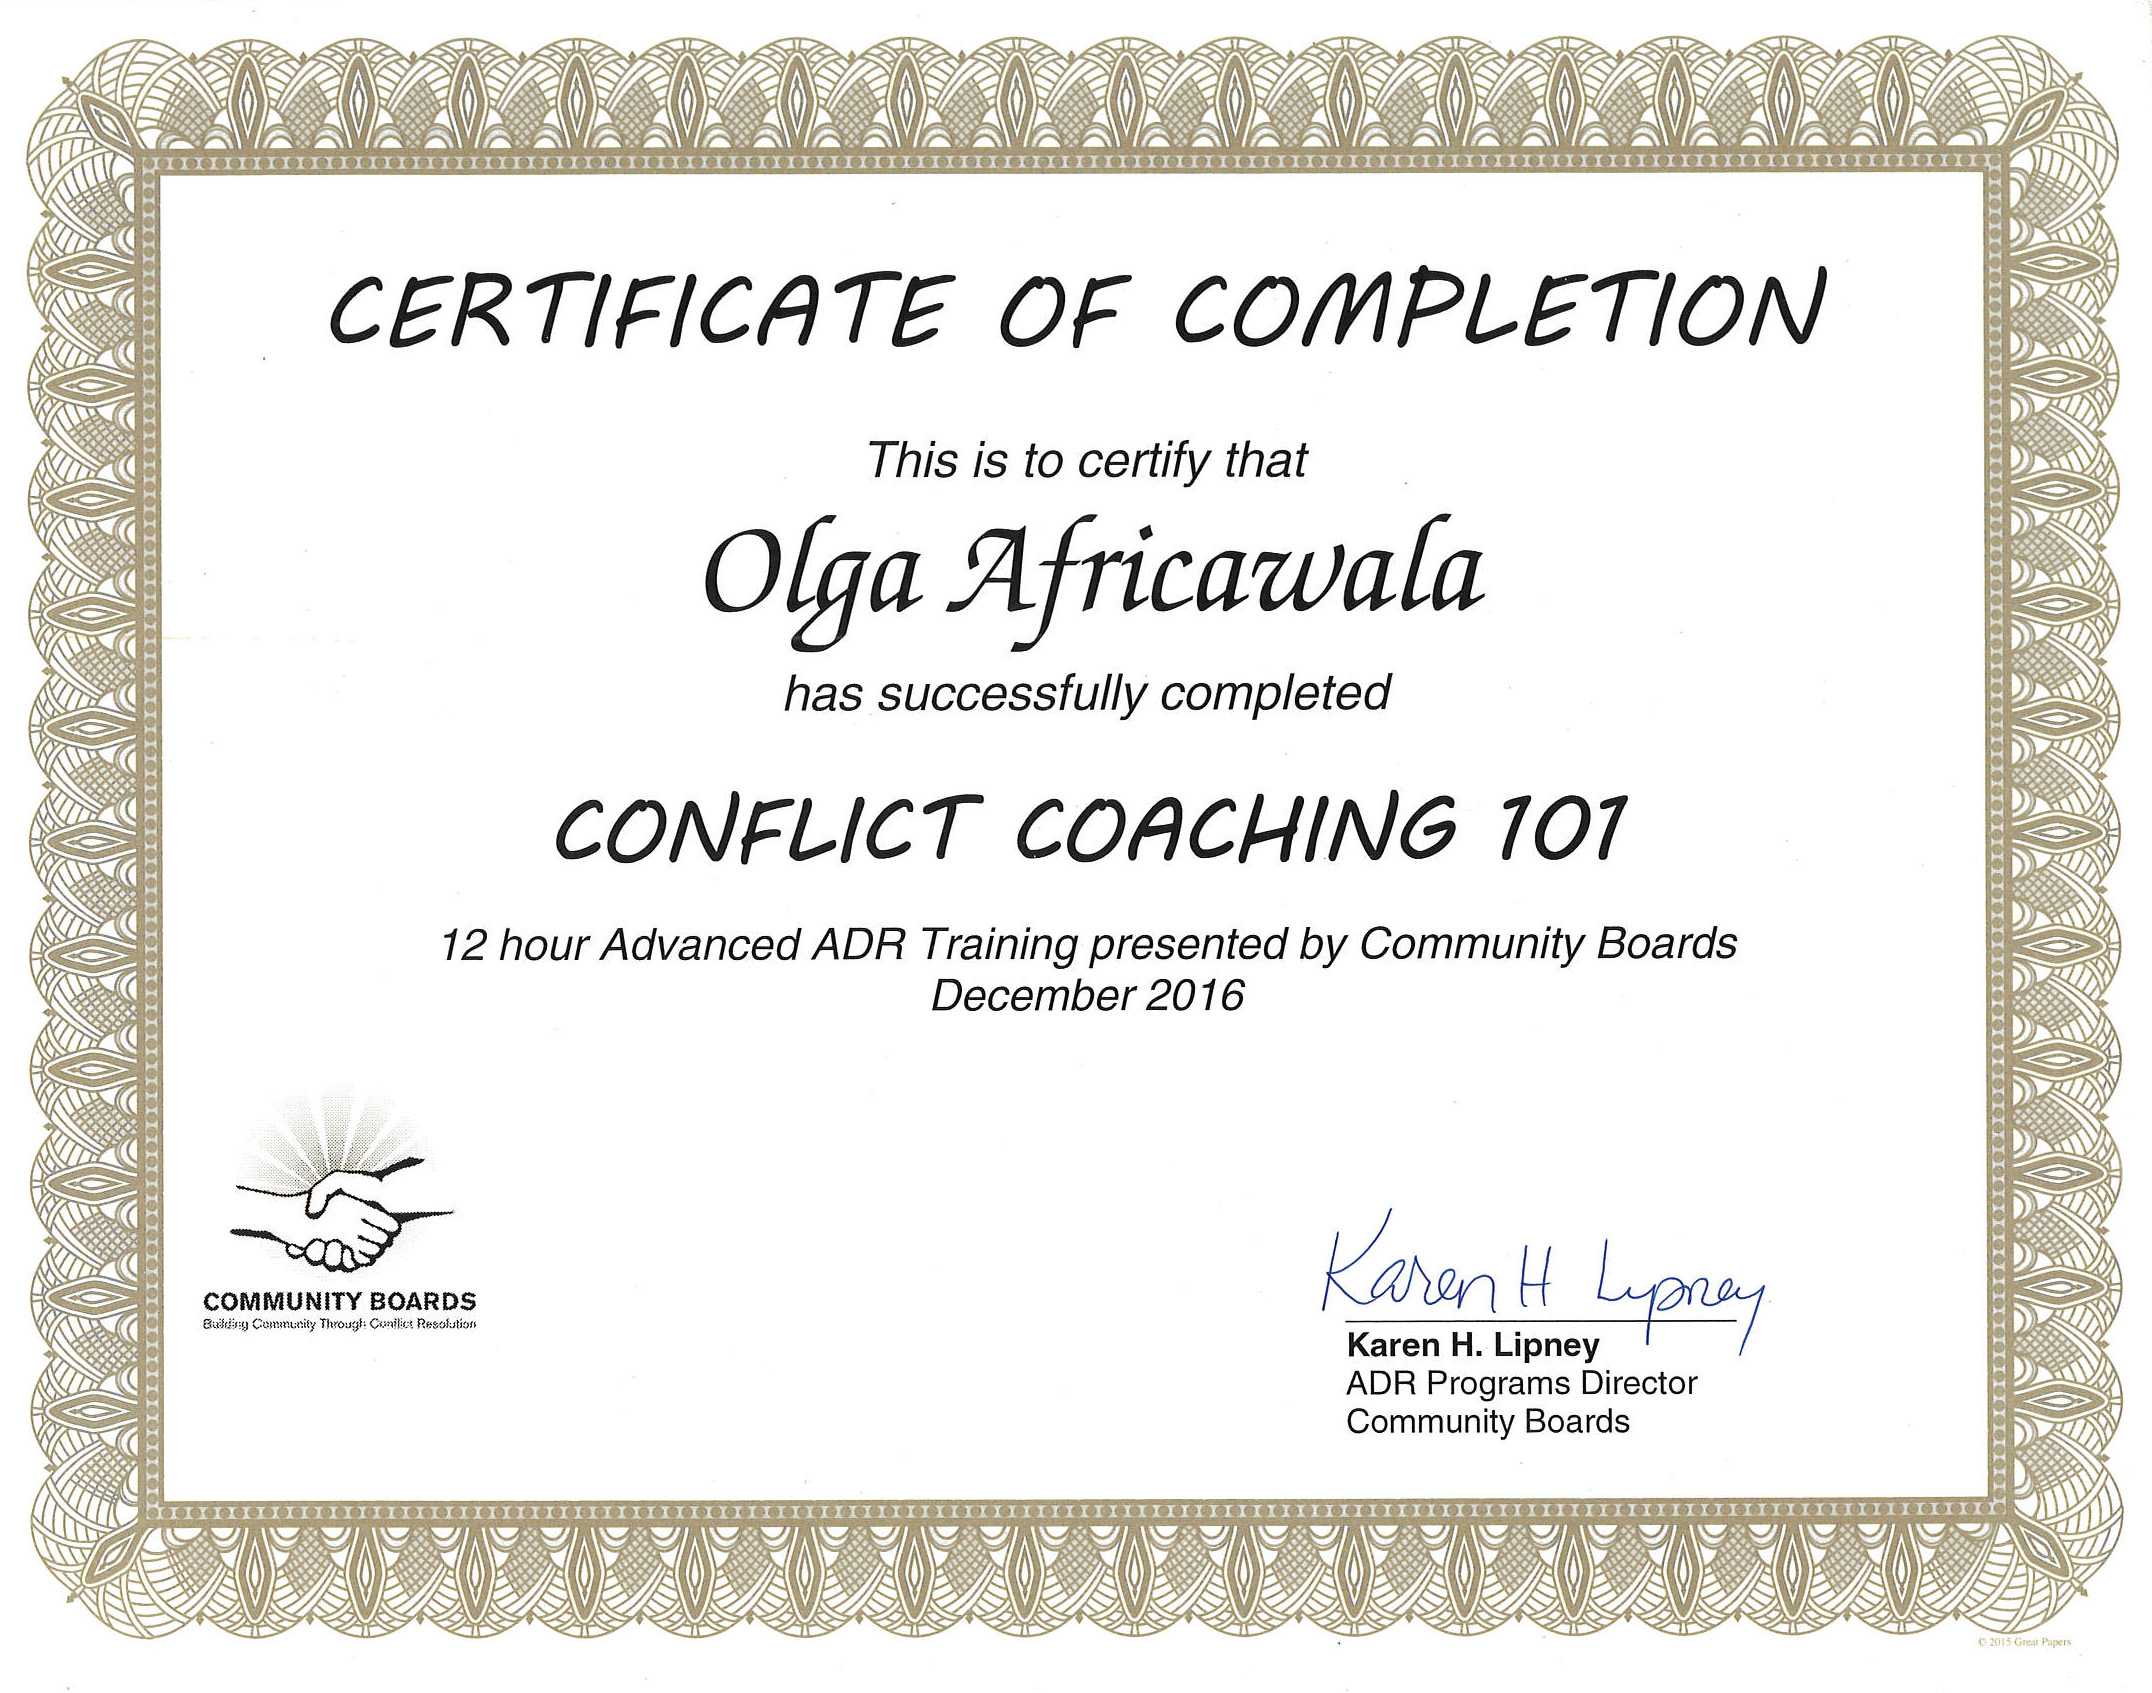 About us harmonious resolutions conflict coaching 101 certificate community boards 2016 12 hours xflitez Choice Image